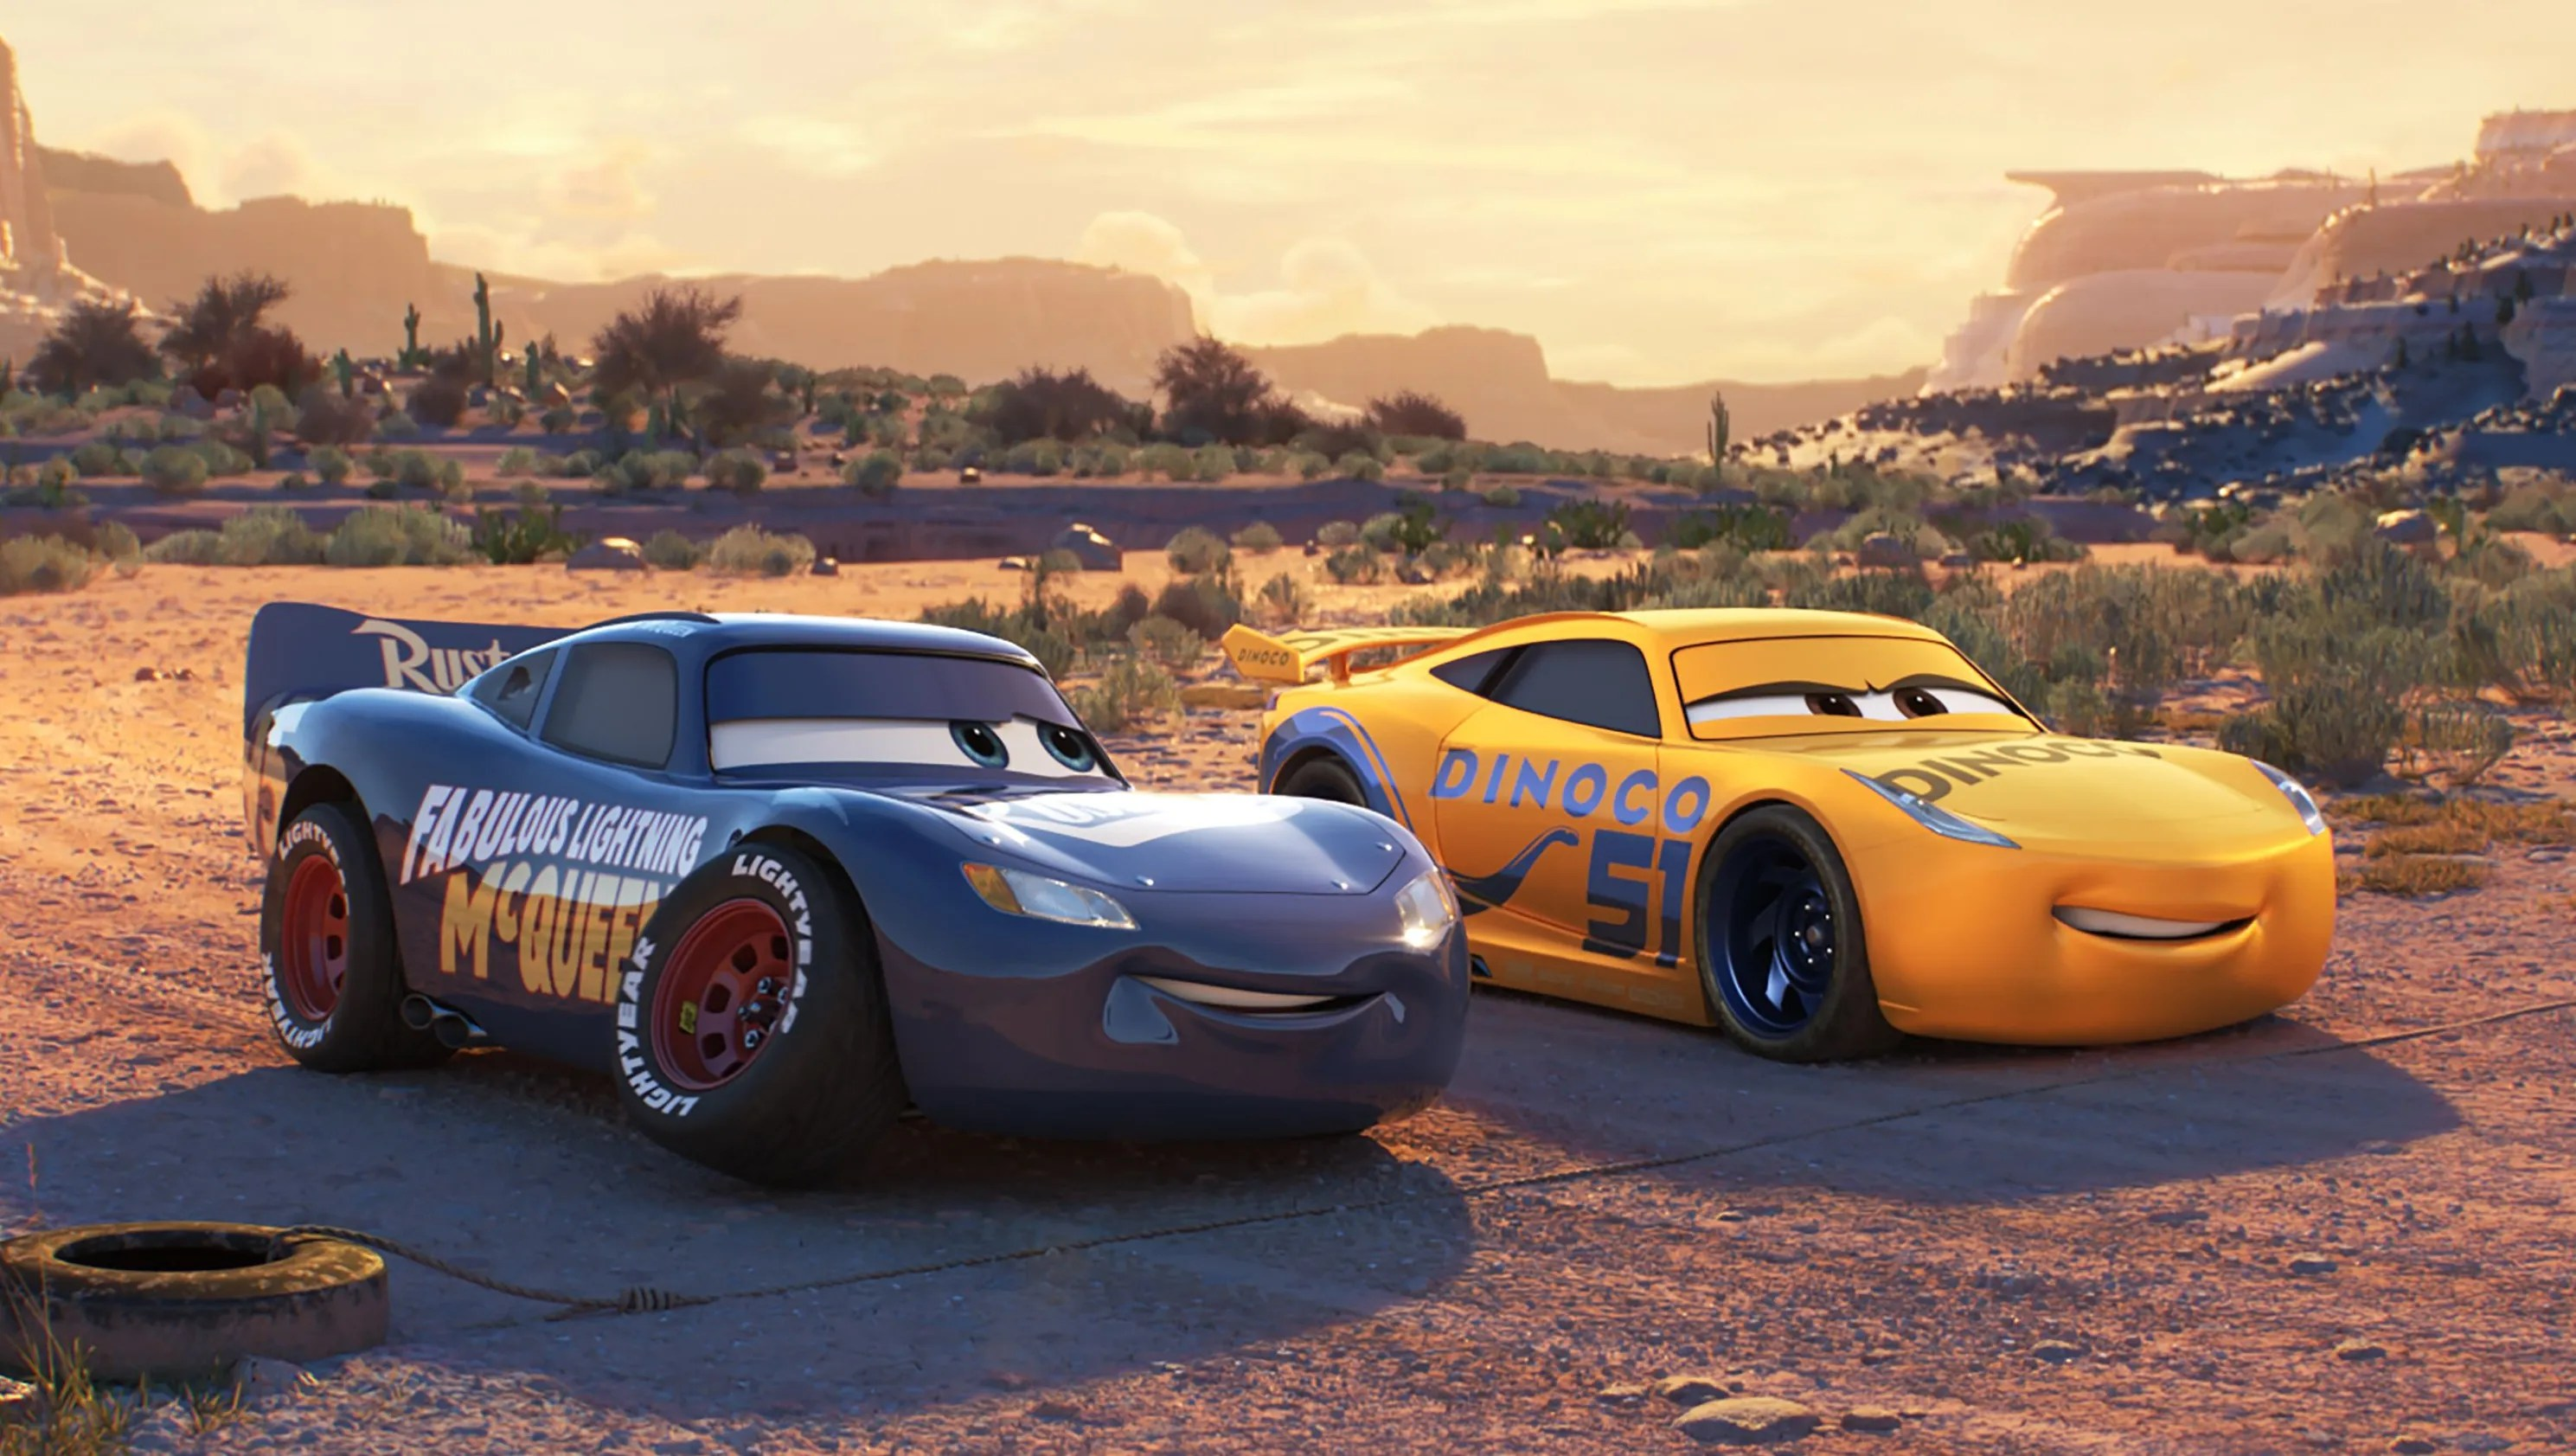 'Cars 3': Why Lightning McQueen got a new paint job (spoilers)